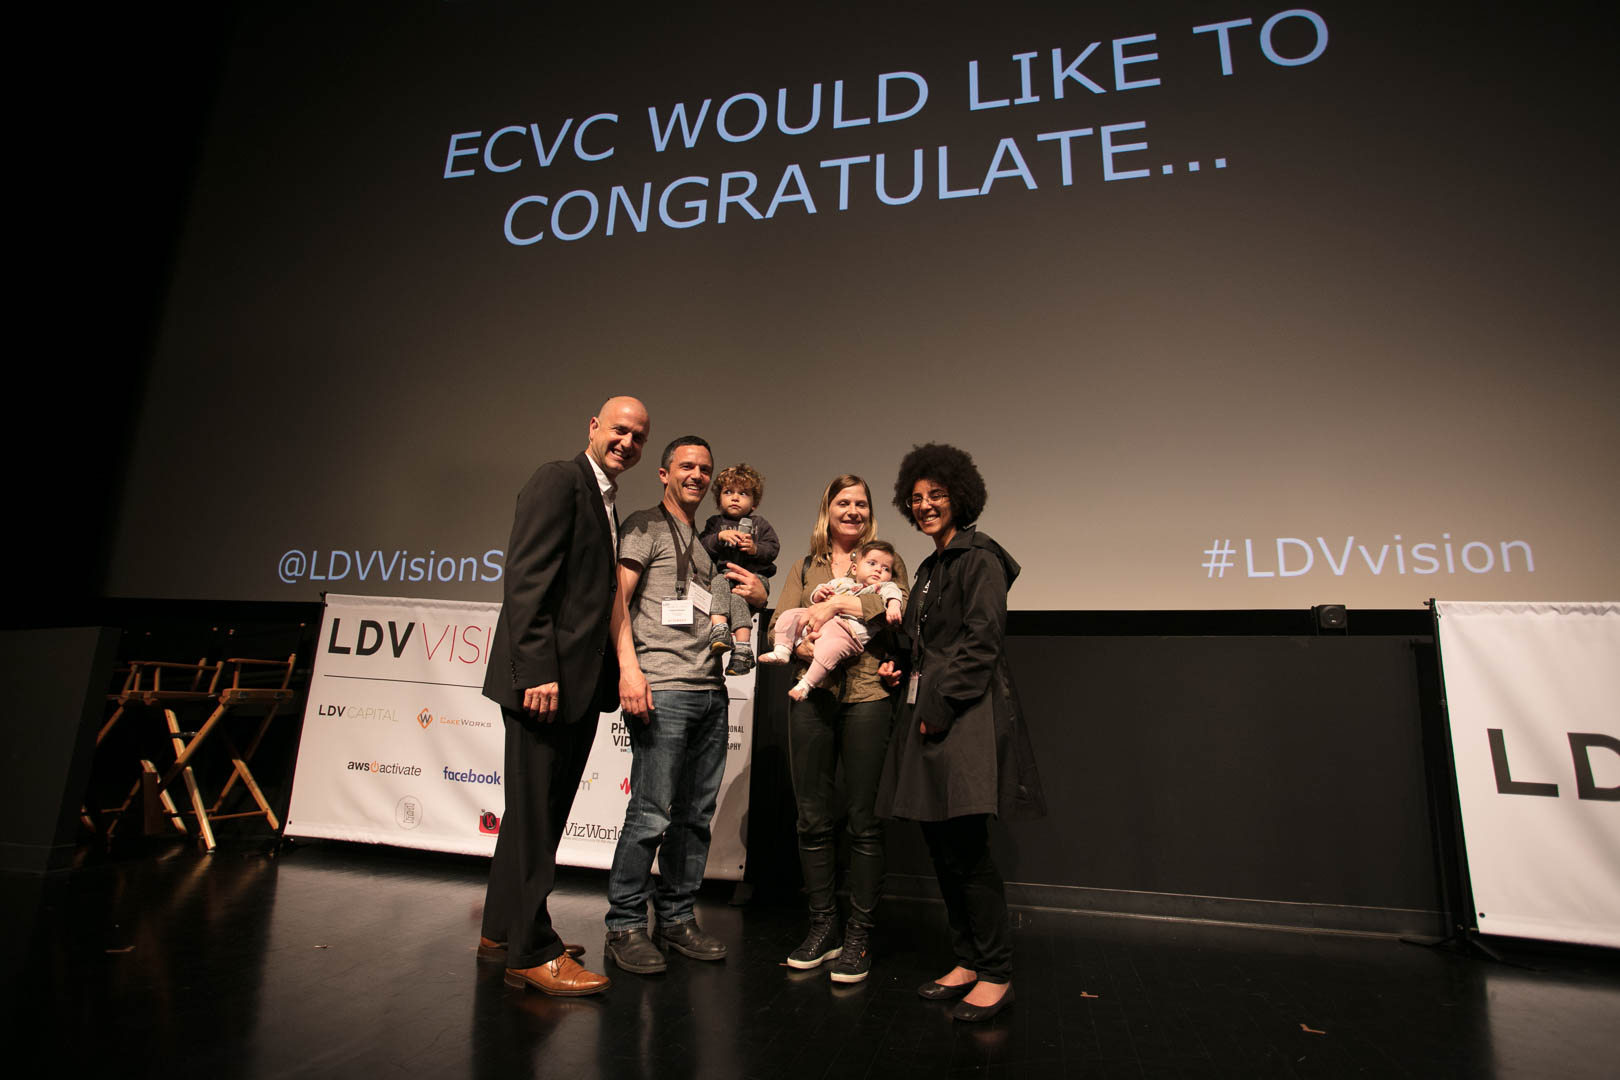 We are a family affair! Serge, August, Kirstine and Emilia Belongie along with Evan Nisselson celebrating Timnit Gebru's win in the 2017 Entrepreneurial Computer Vision Challenge. See you next year! #carpediem ©Robert Wright/LDV Vision Summit